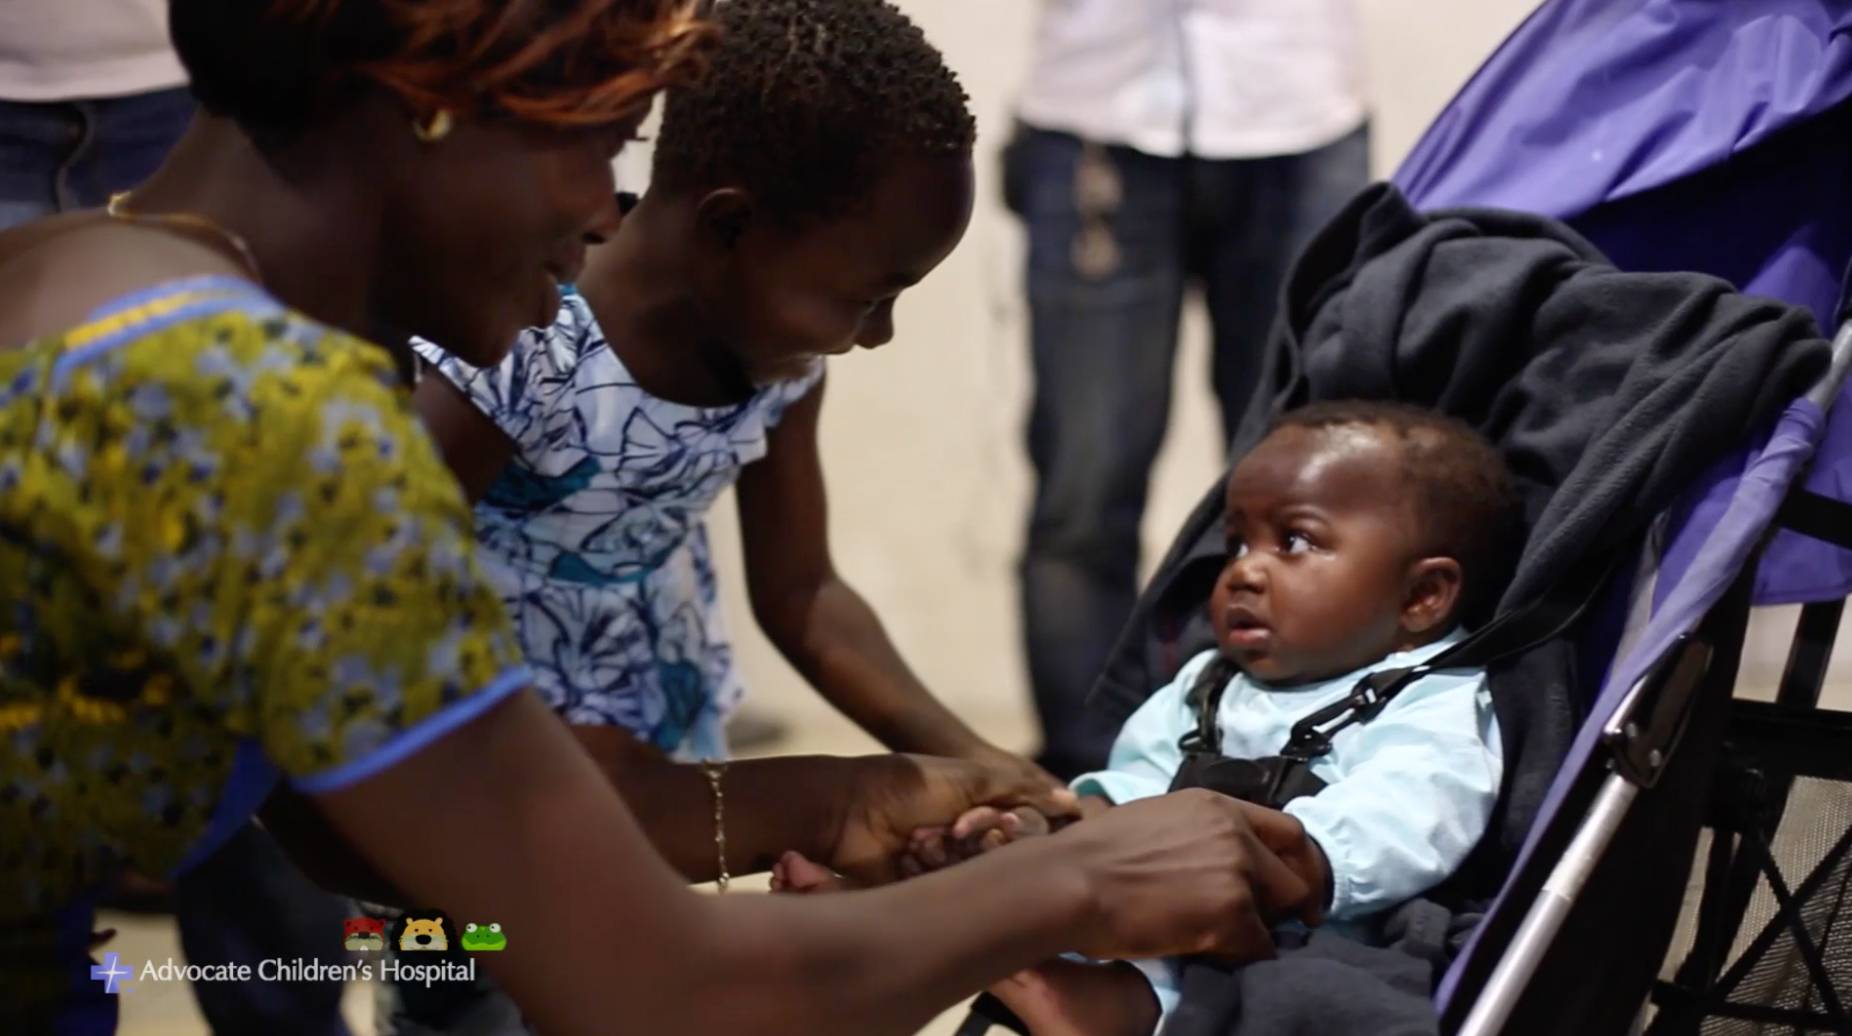 Baby born with 4 legs reunited with family in Africa after surgery